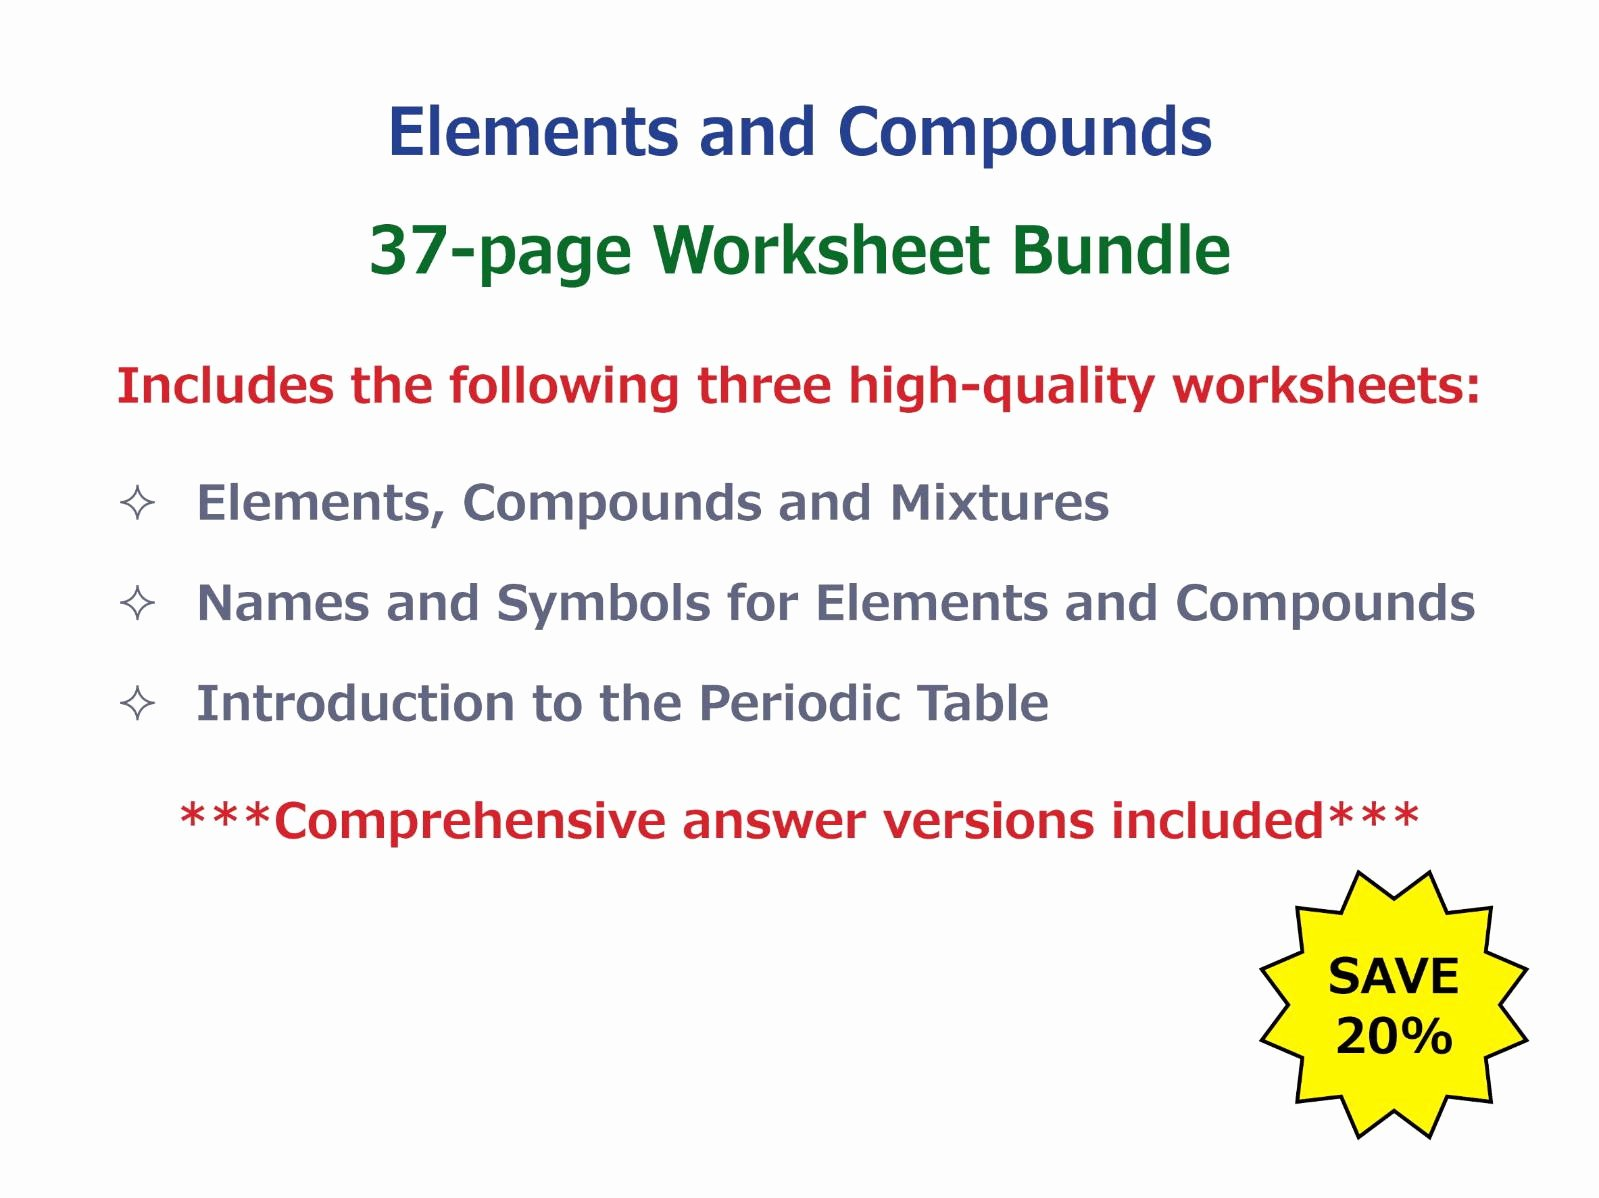 Elements and Compounds Worksheet Best Of Goodscienceworksheets S Shop Teaching Resources Tes